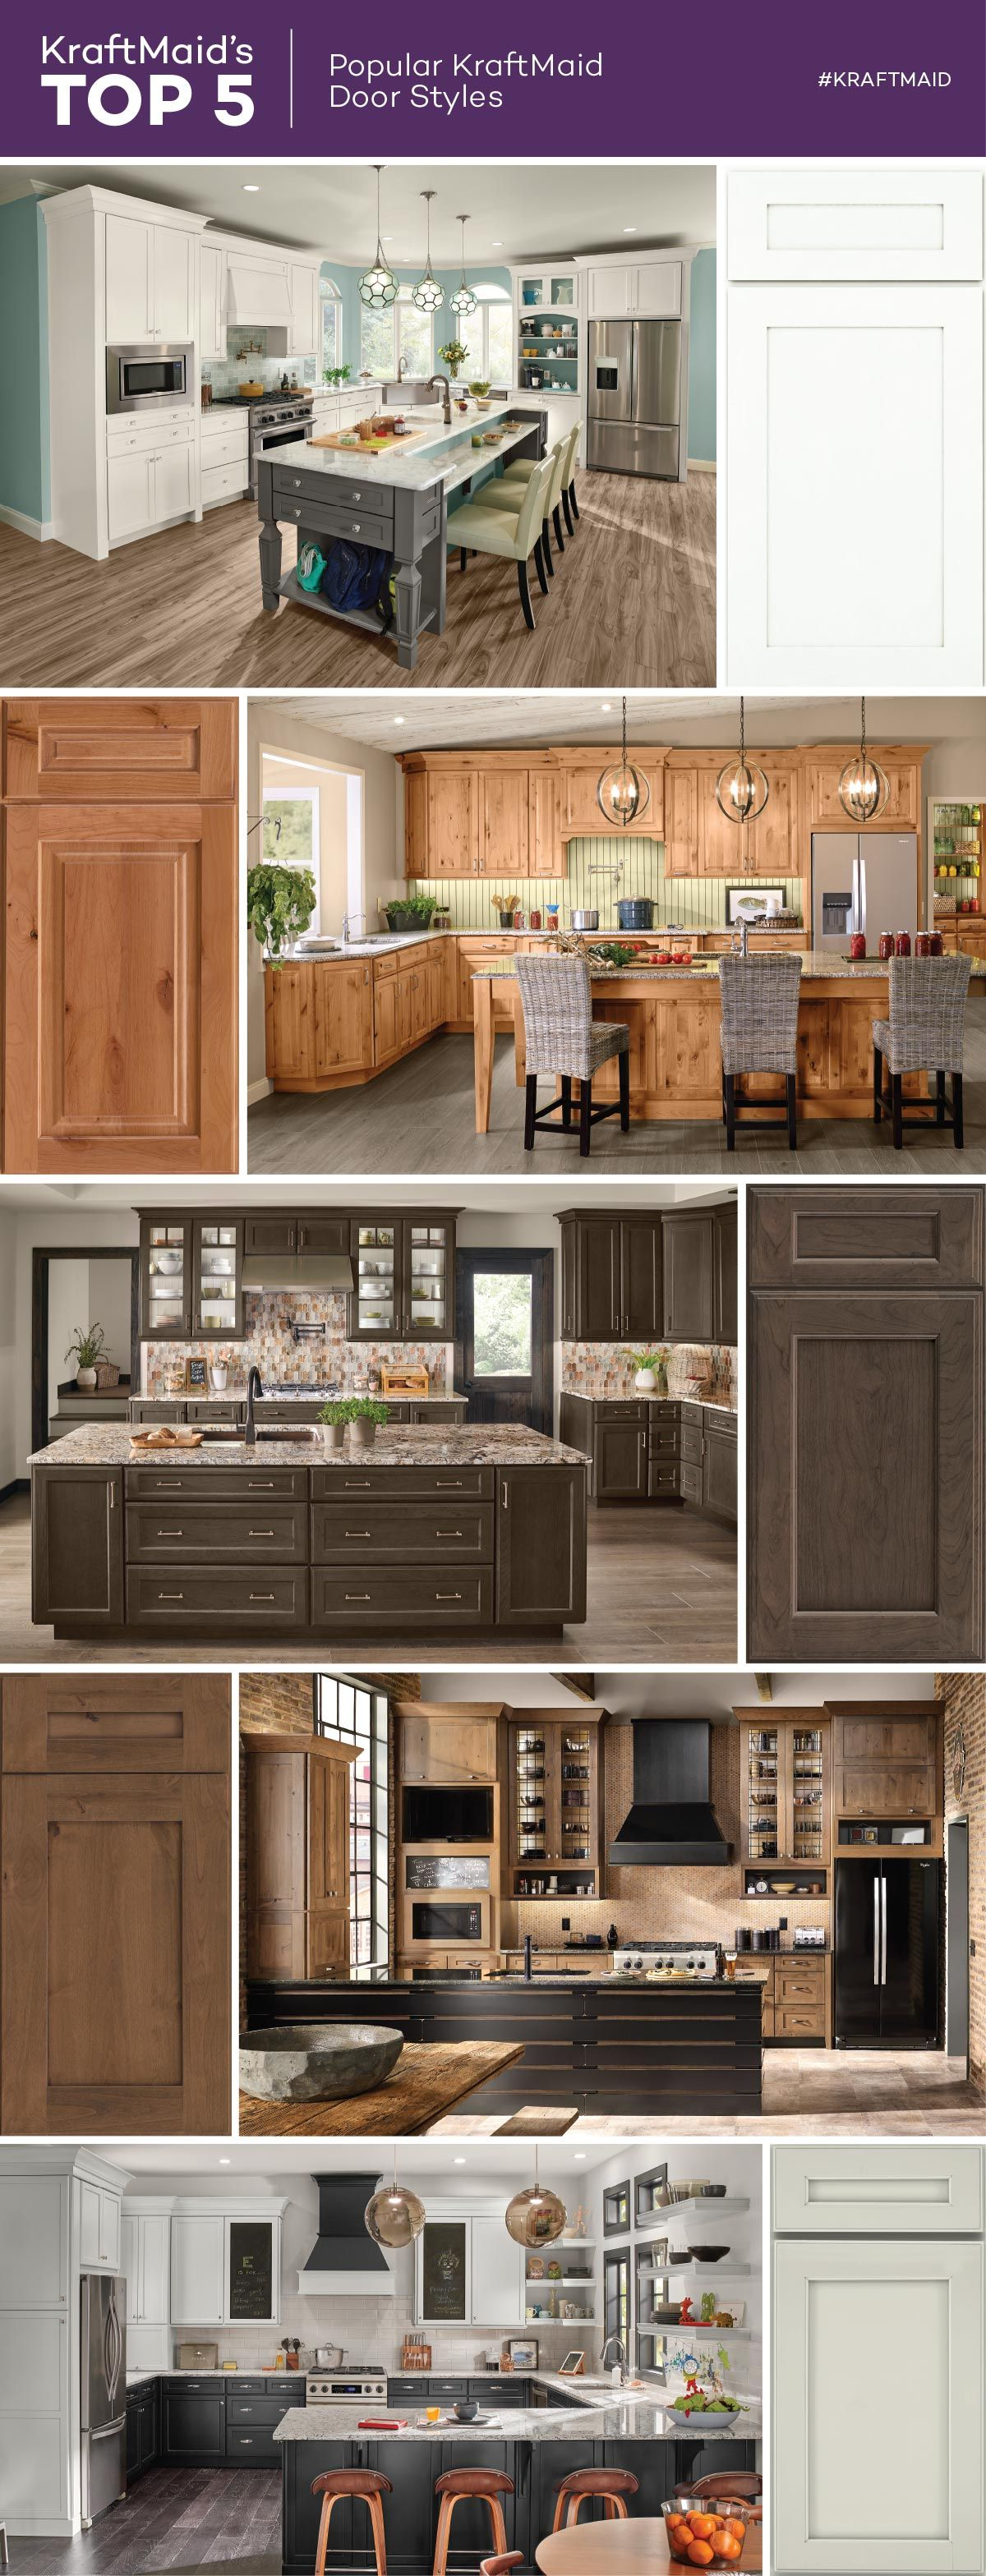 KraftMaid® Shaker Style Cabinet Doors Are Timeless In Style, But Can Also  Be Modified With Handles Or Hardware To Fit Any Kitchen Design.